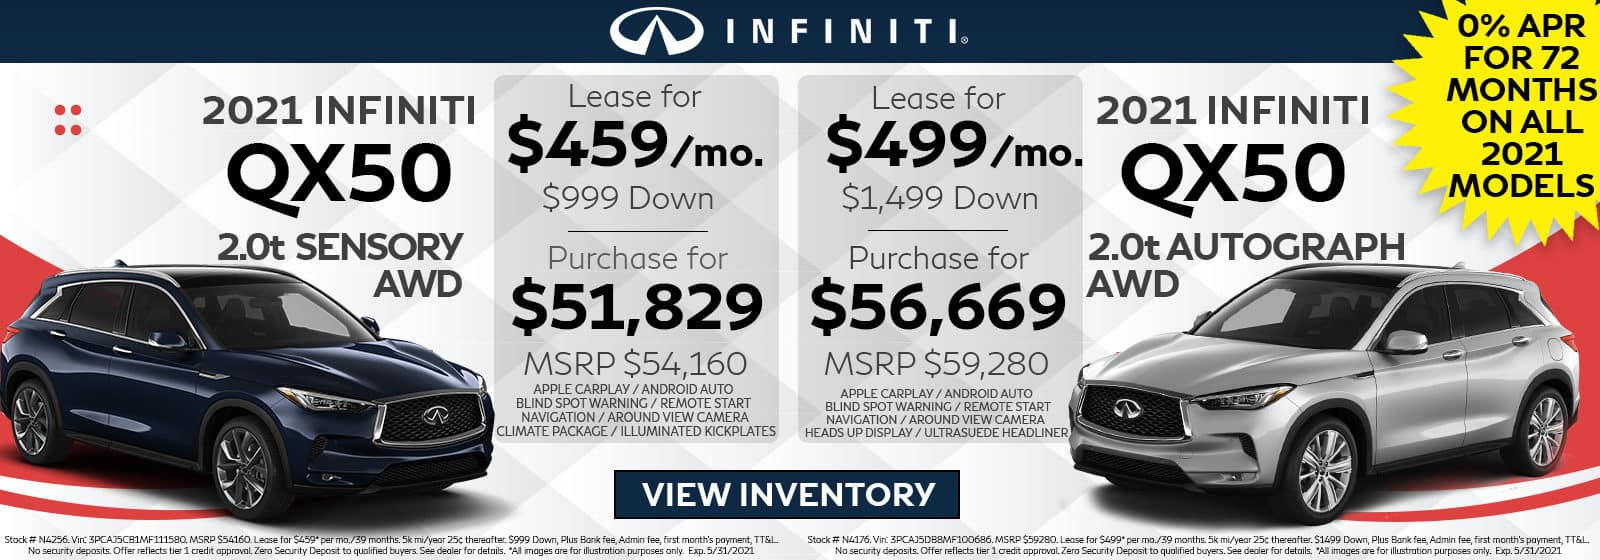 INFINITI vehicles on red and grey background. INFINITI lease and purchase offers. Restrictions apply, see retailer for complete details.